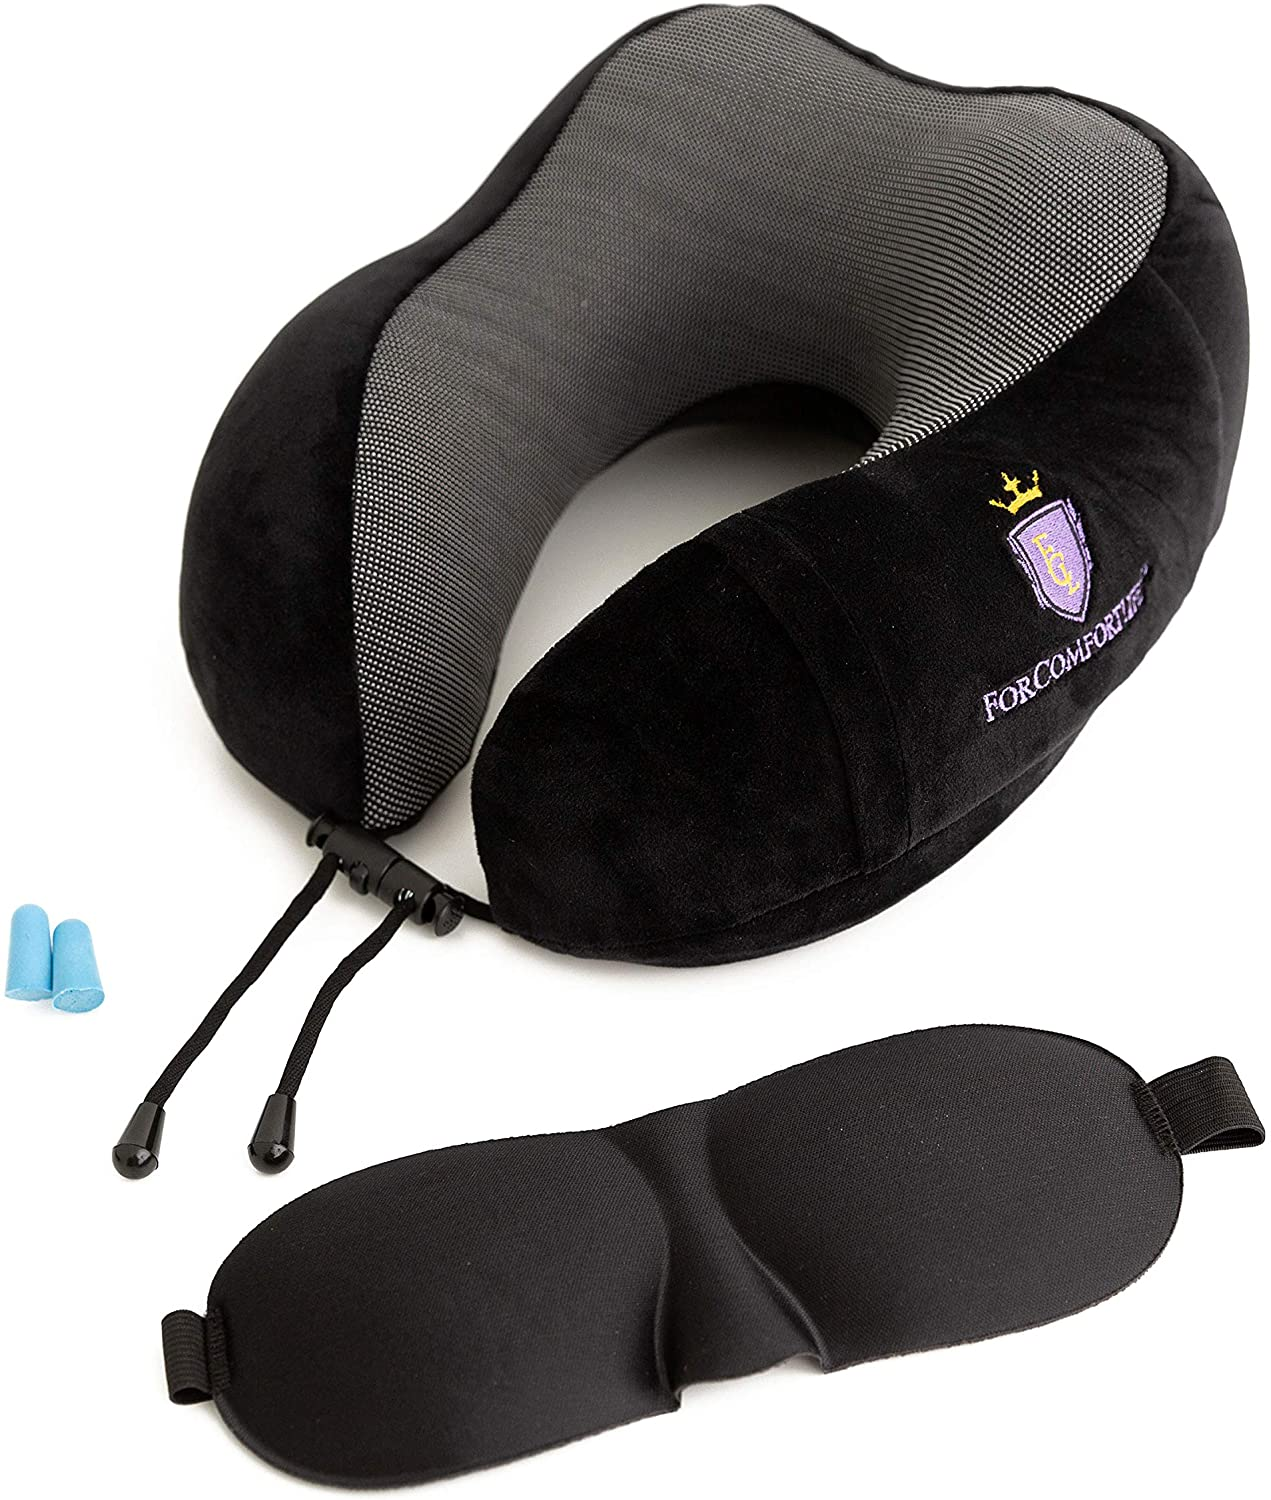 ForComfortLife Neck Pillows for Traveling - Ideal Travel Neck Pillows with Memory Foam and Neck Rest Pillow Travel kit - Machine Washable Travel Neck Pillow